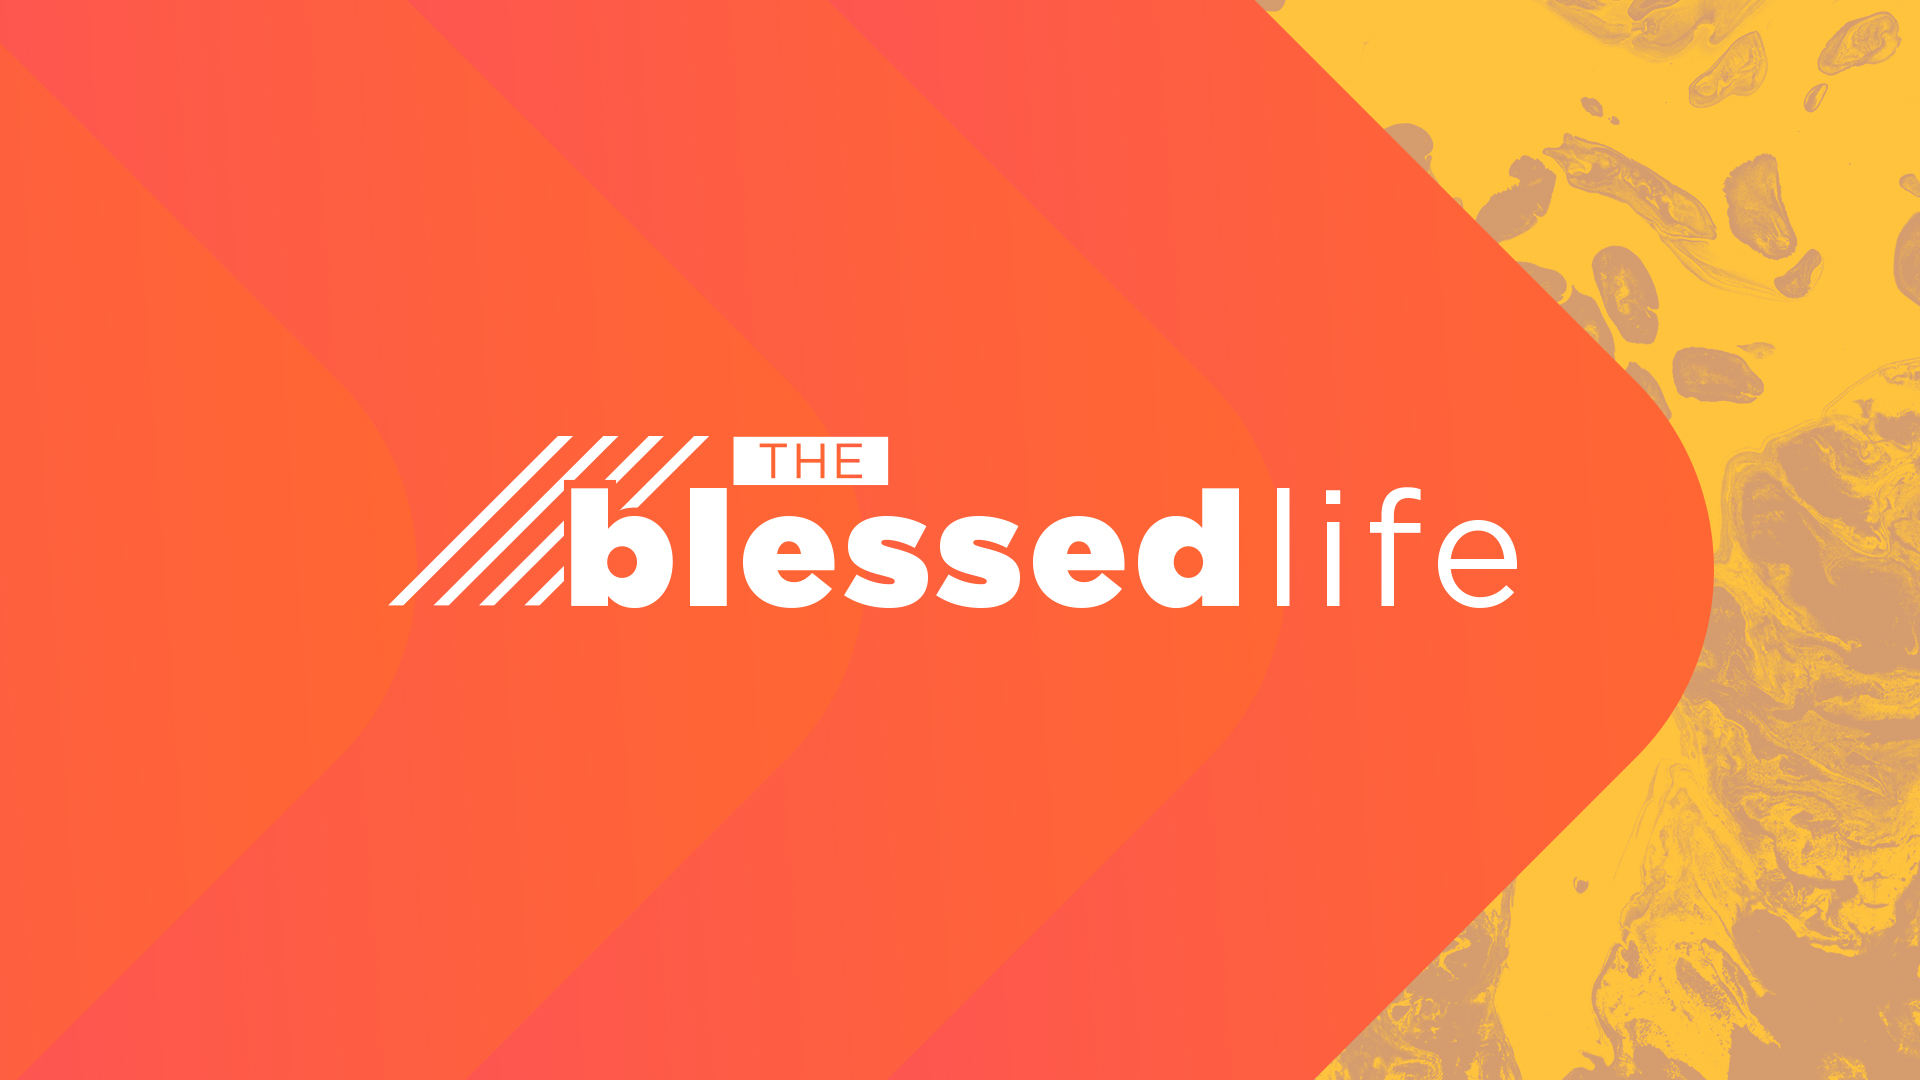 The Blessed Life – A Life That Has Been Broken